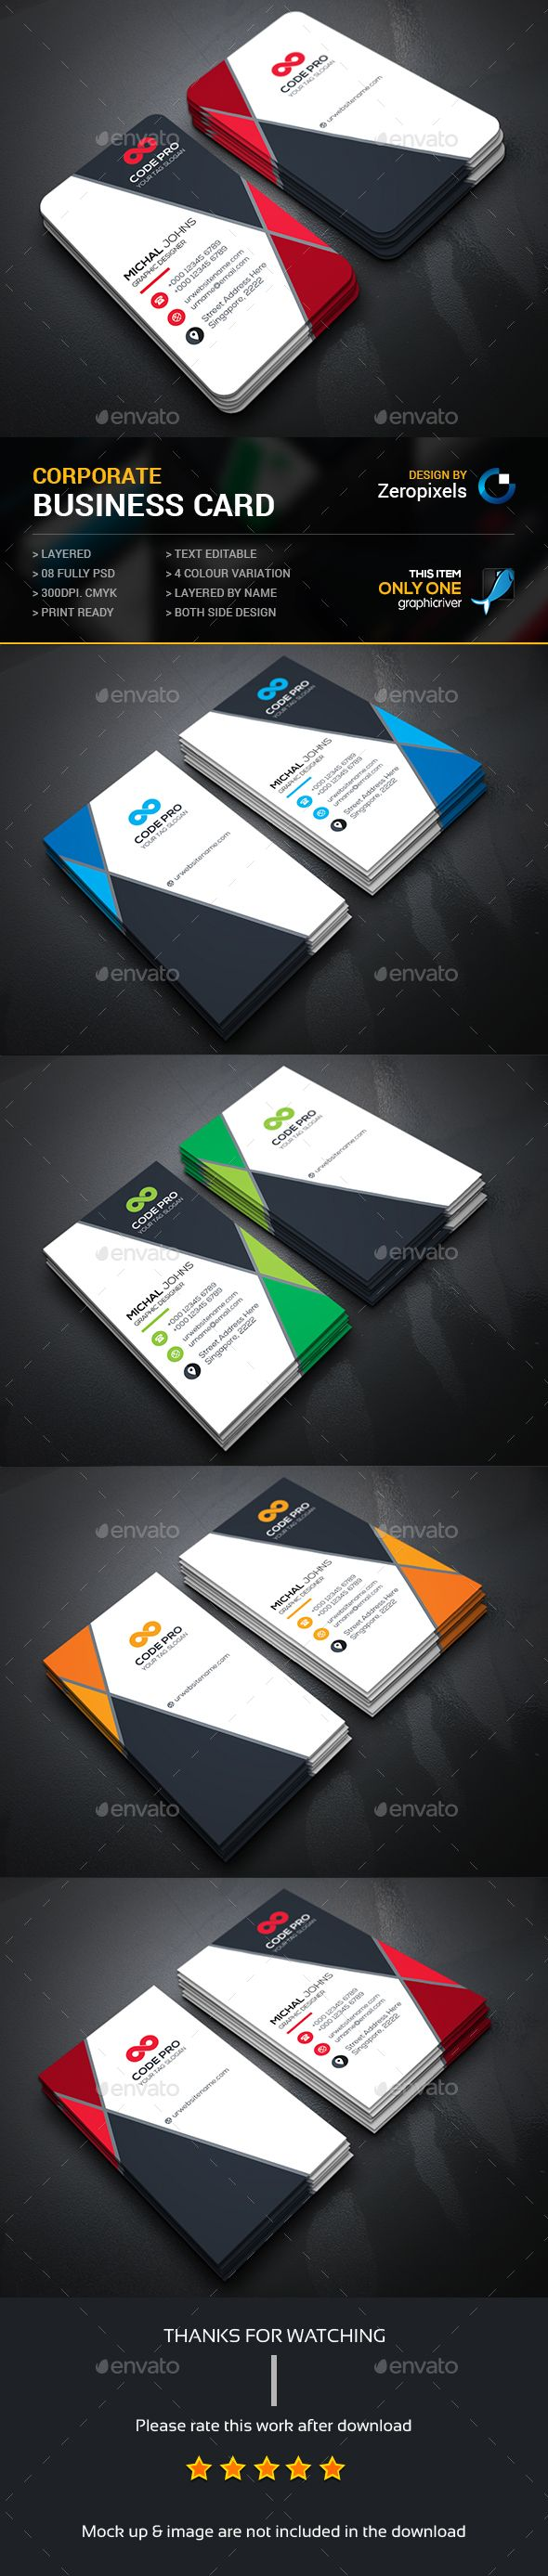 30 Best Business Card Gym Images On Pinterest Business Cards